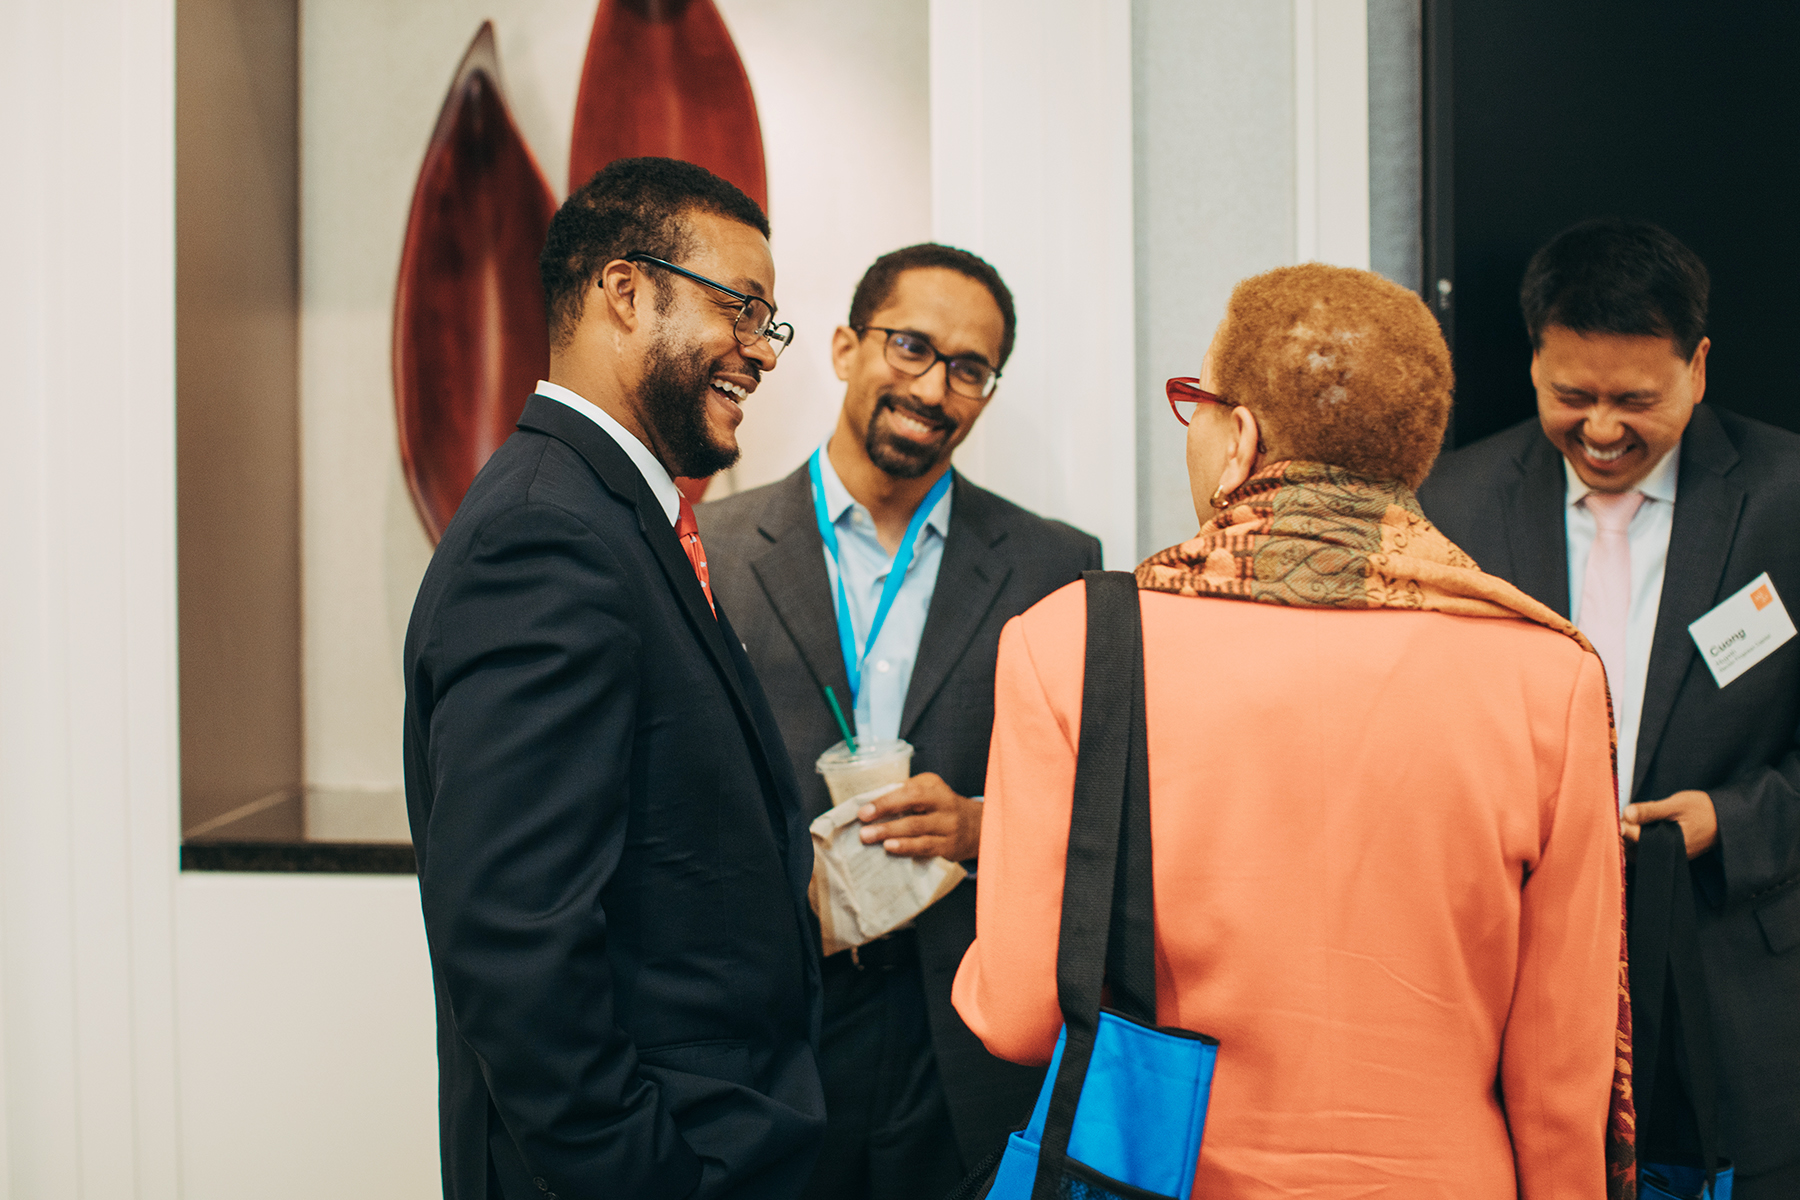 Eric Foster talking with other attendees at the 2019 MDI Portfolio Summit hosted by W.K. Kellogg Foundation in Detroit, Michigan.